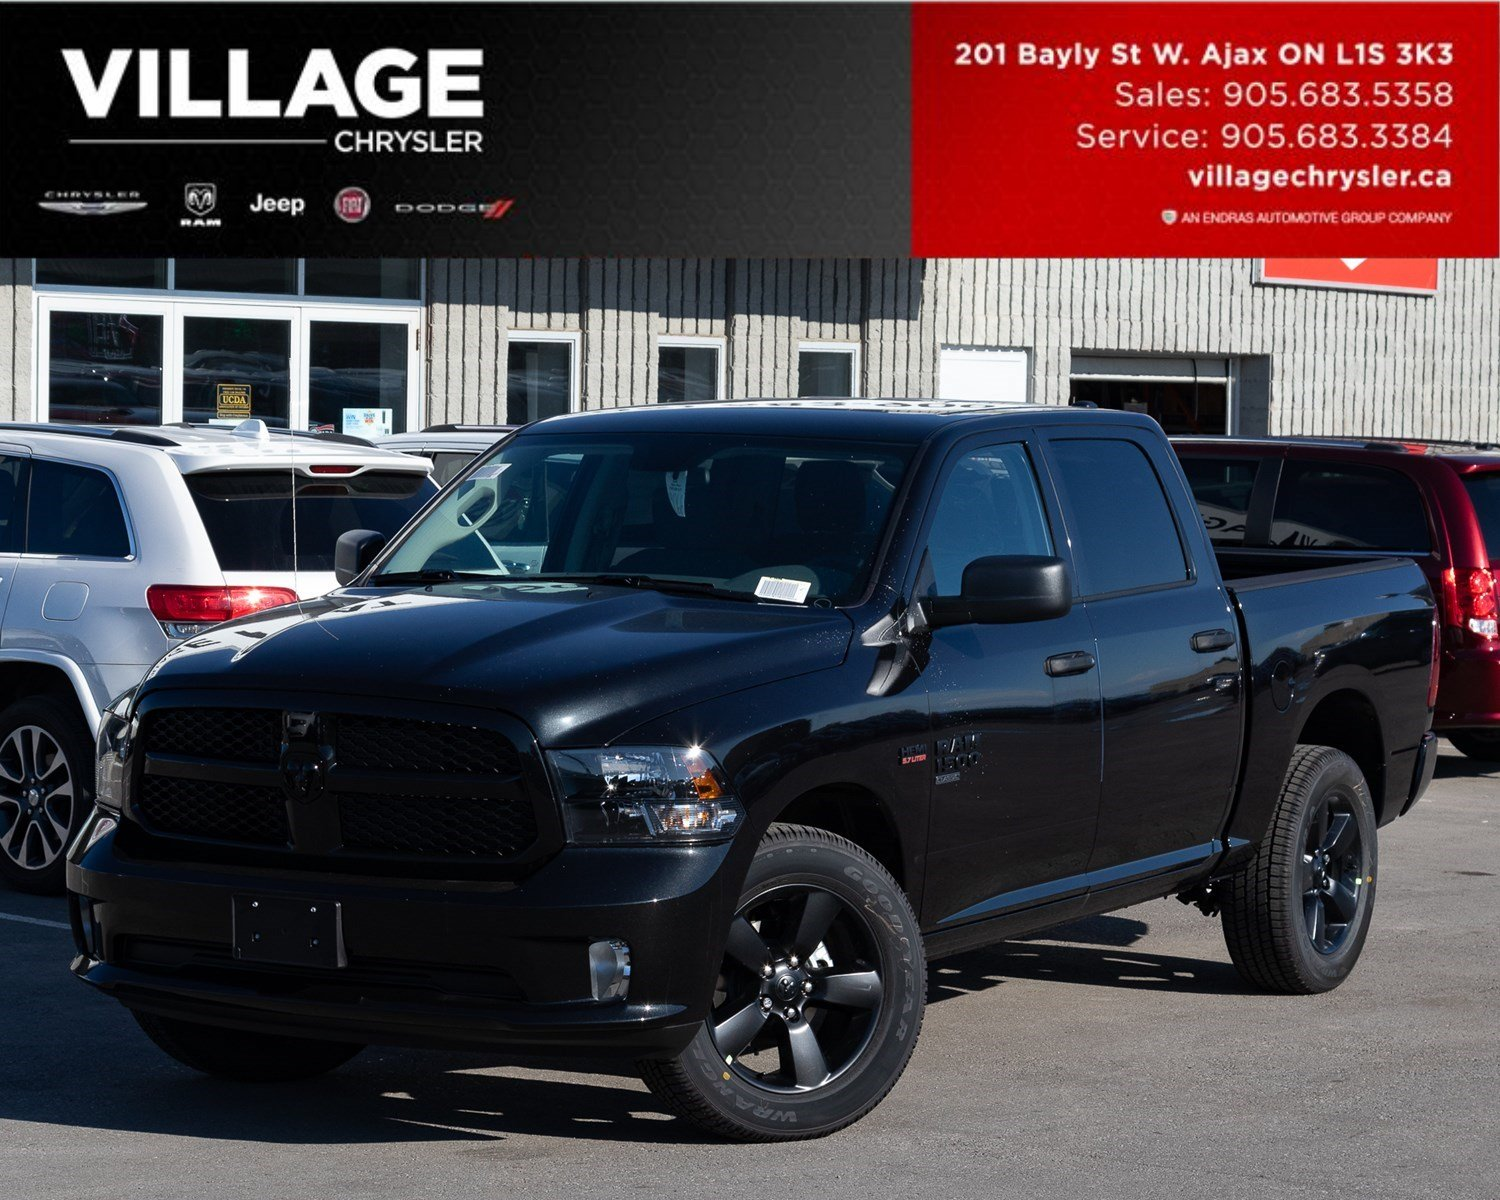 2019 Ram 1500 Classic Express|4x4|Crew|Backup Cam|Bluetooth Camion cabine Crew